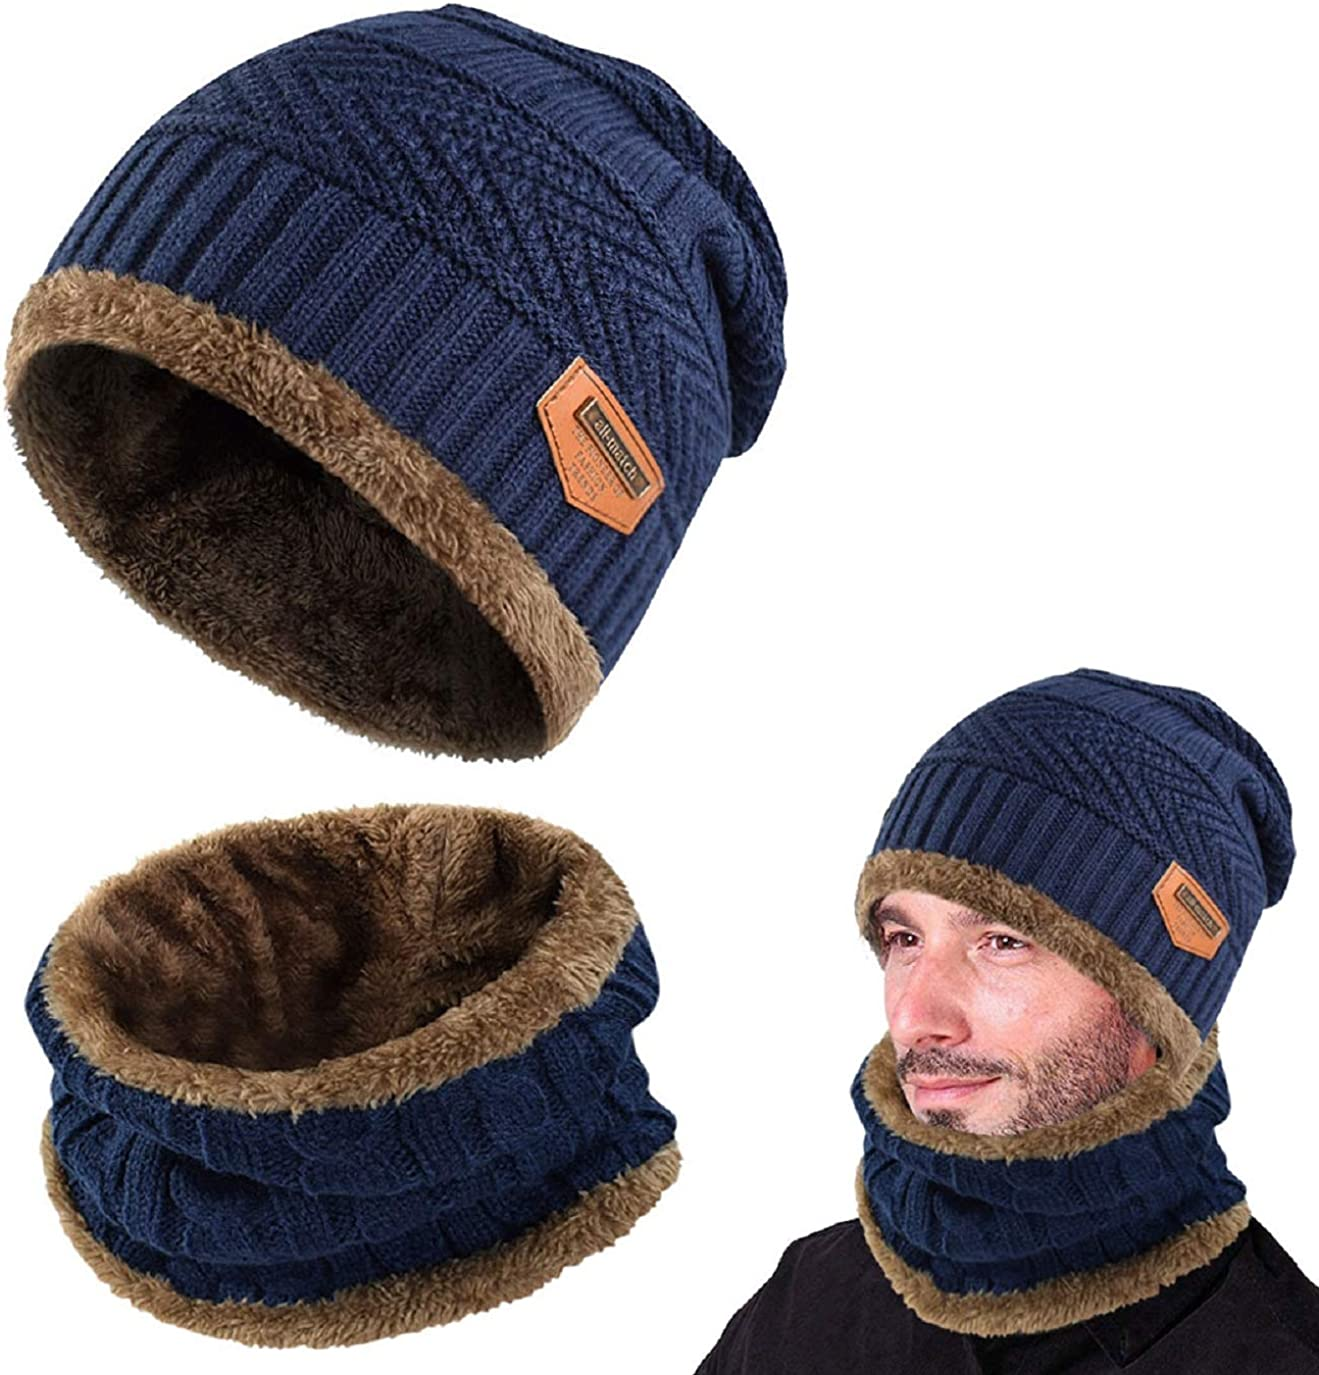 Hat Scarf Set UMIPUBO Thermal Knitted Beanie Hat and Scarf Circle Scarf Warm Skiing Hat Outdoor Sports Hat Scarf Sets for Men//Women